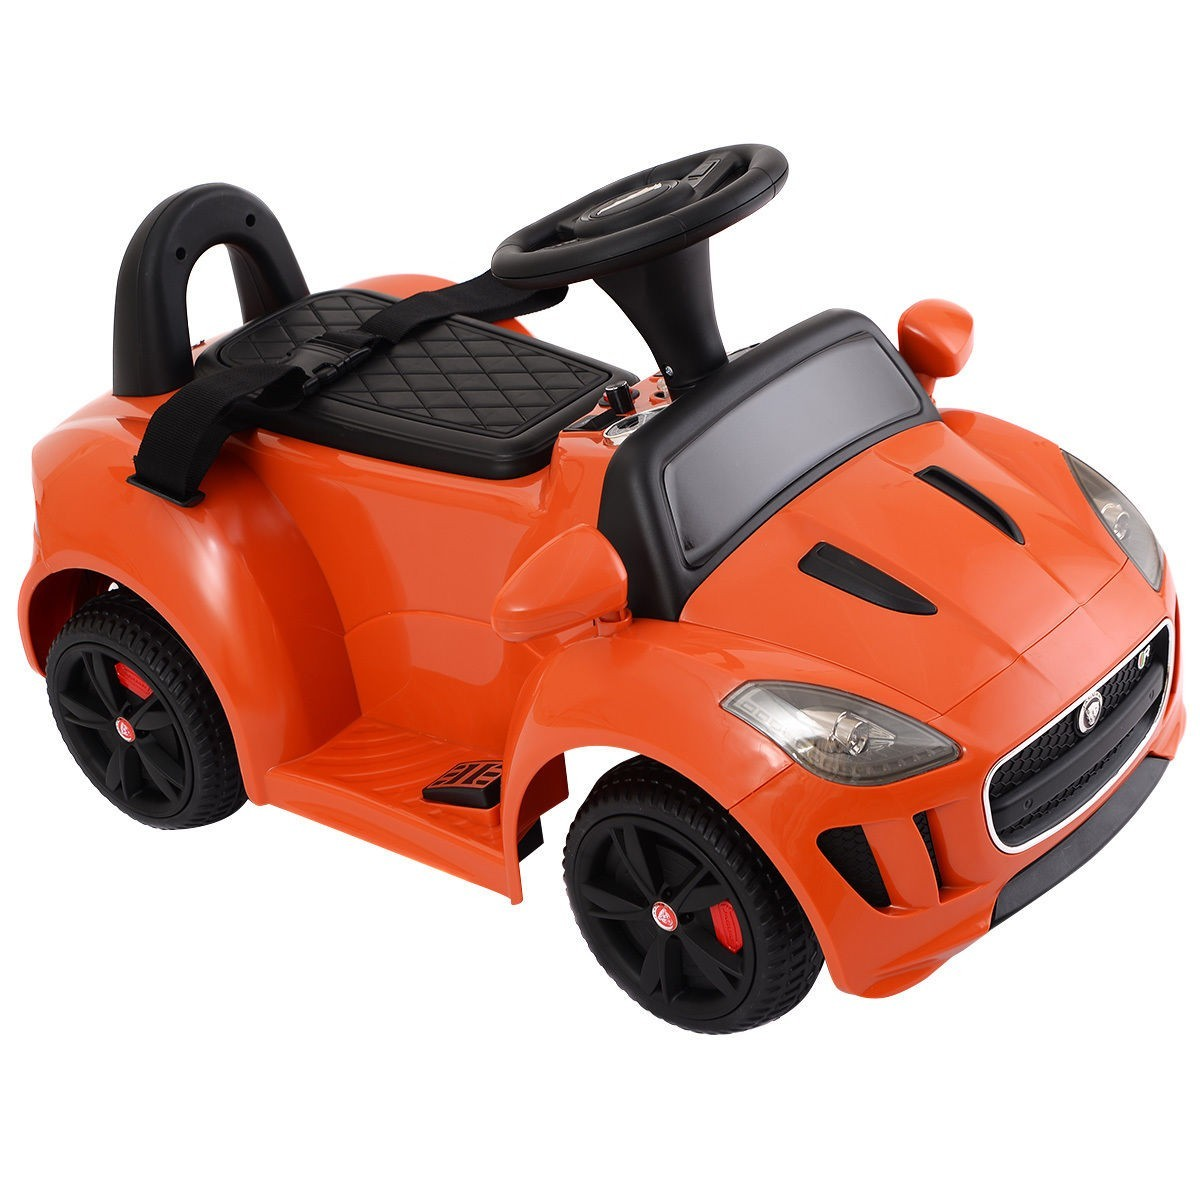 JAGUAR F-TYPE 6V Electric Kids Ride On Car Licensed MP3 Battery Power Orange